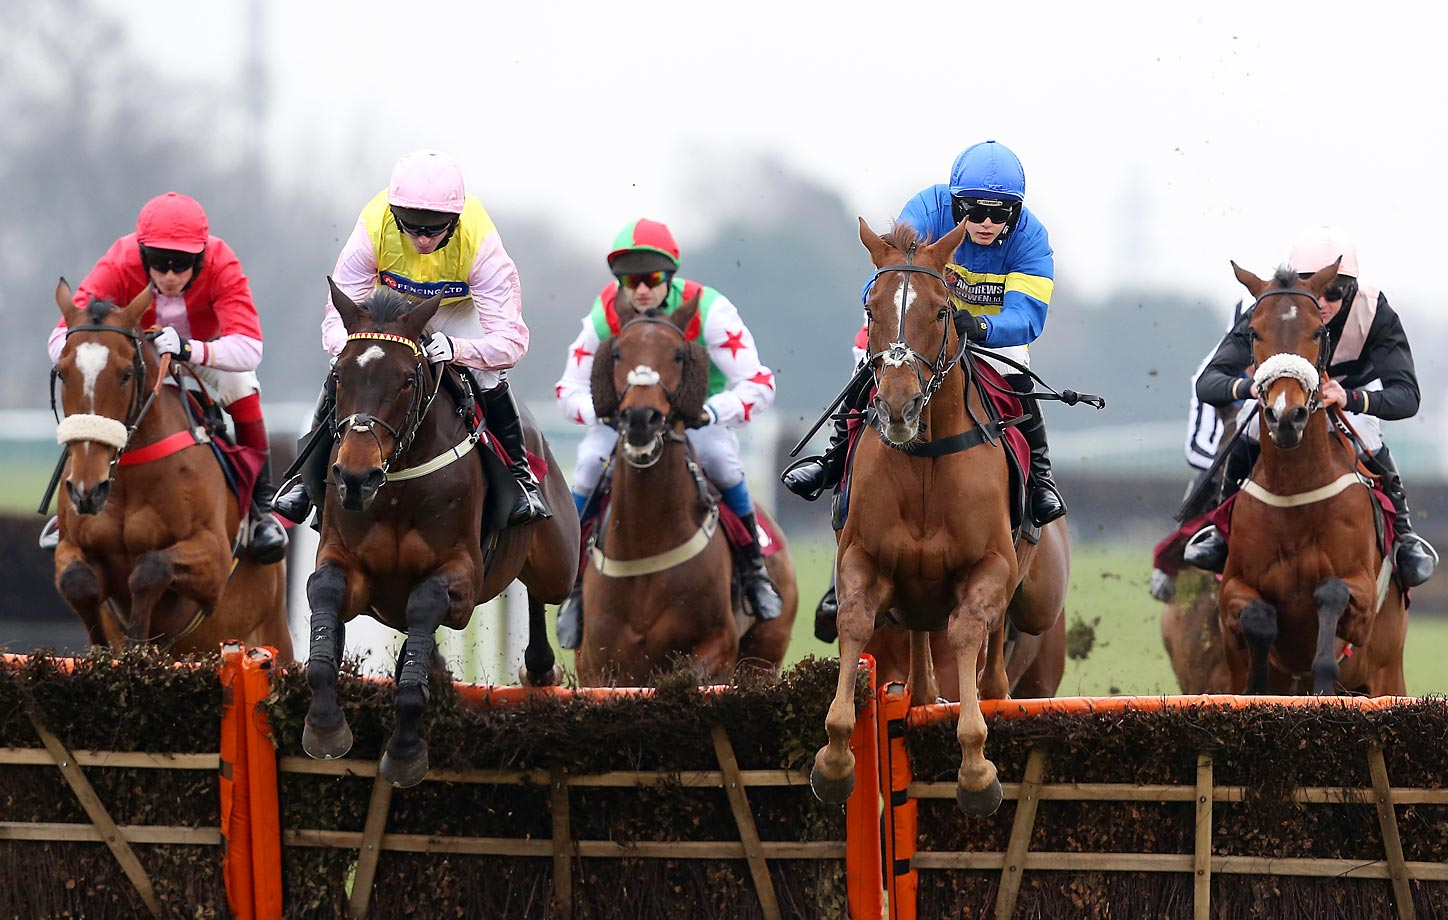 Masterful Act ridden by Miss B. Andrews(second from right) jumps a fence ahead of the pack in Haydock, England.